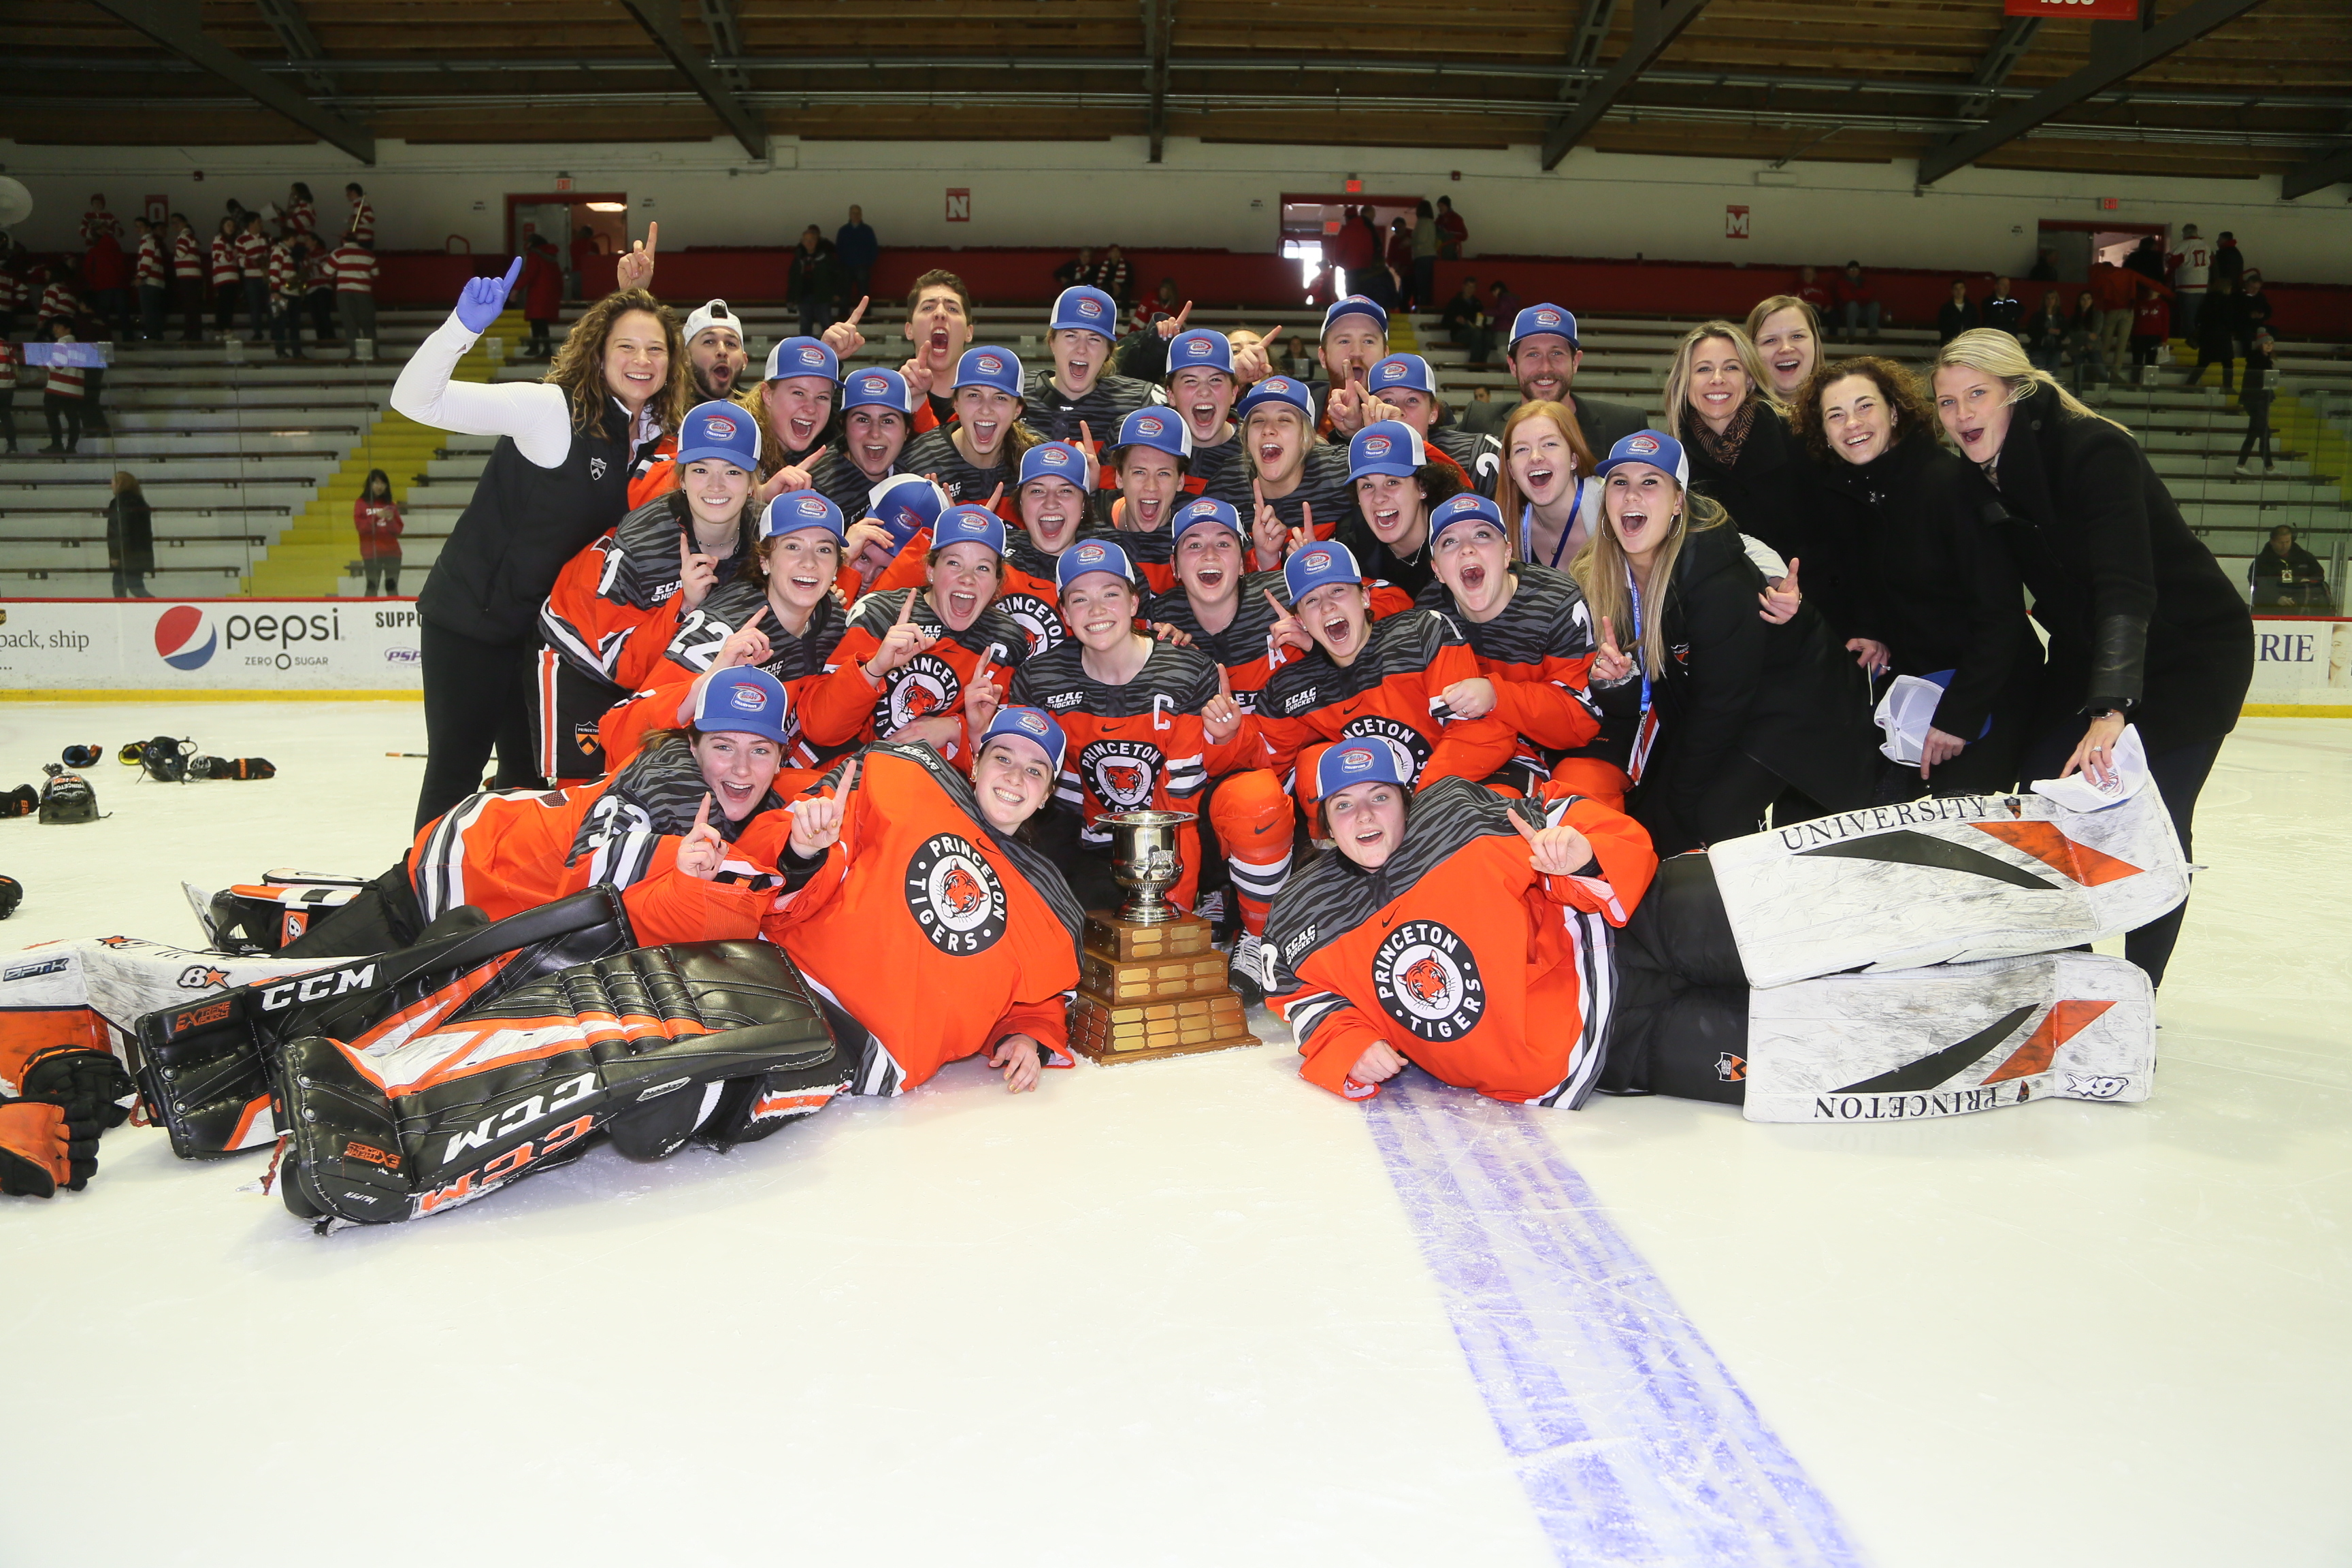 Princeton's players, coaches, and staff members pose on the ice with the ECAC Championship trophy following their 3-2 overtime victory over Cornell.